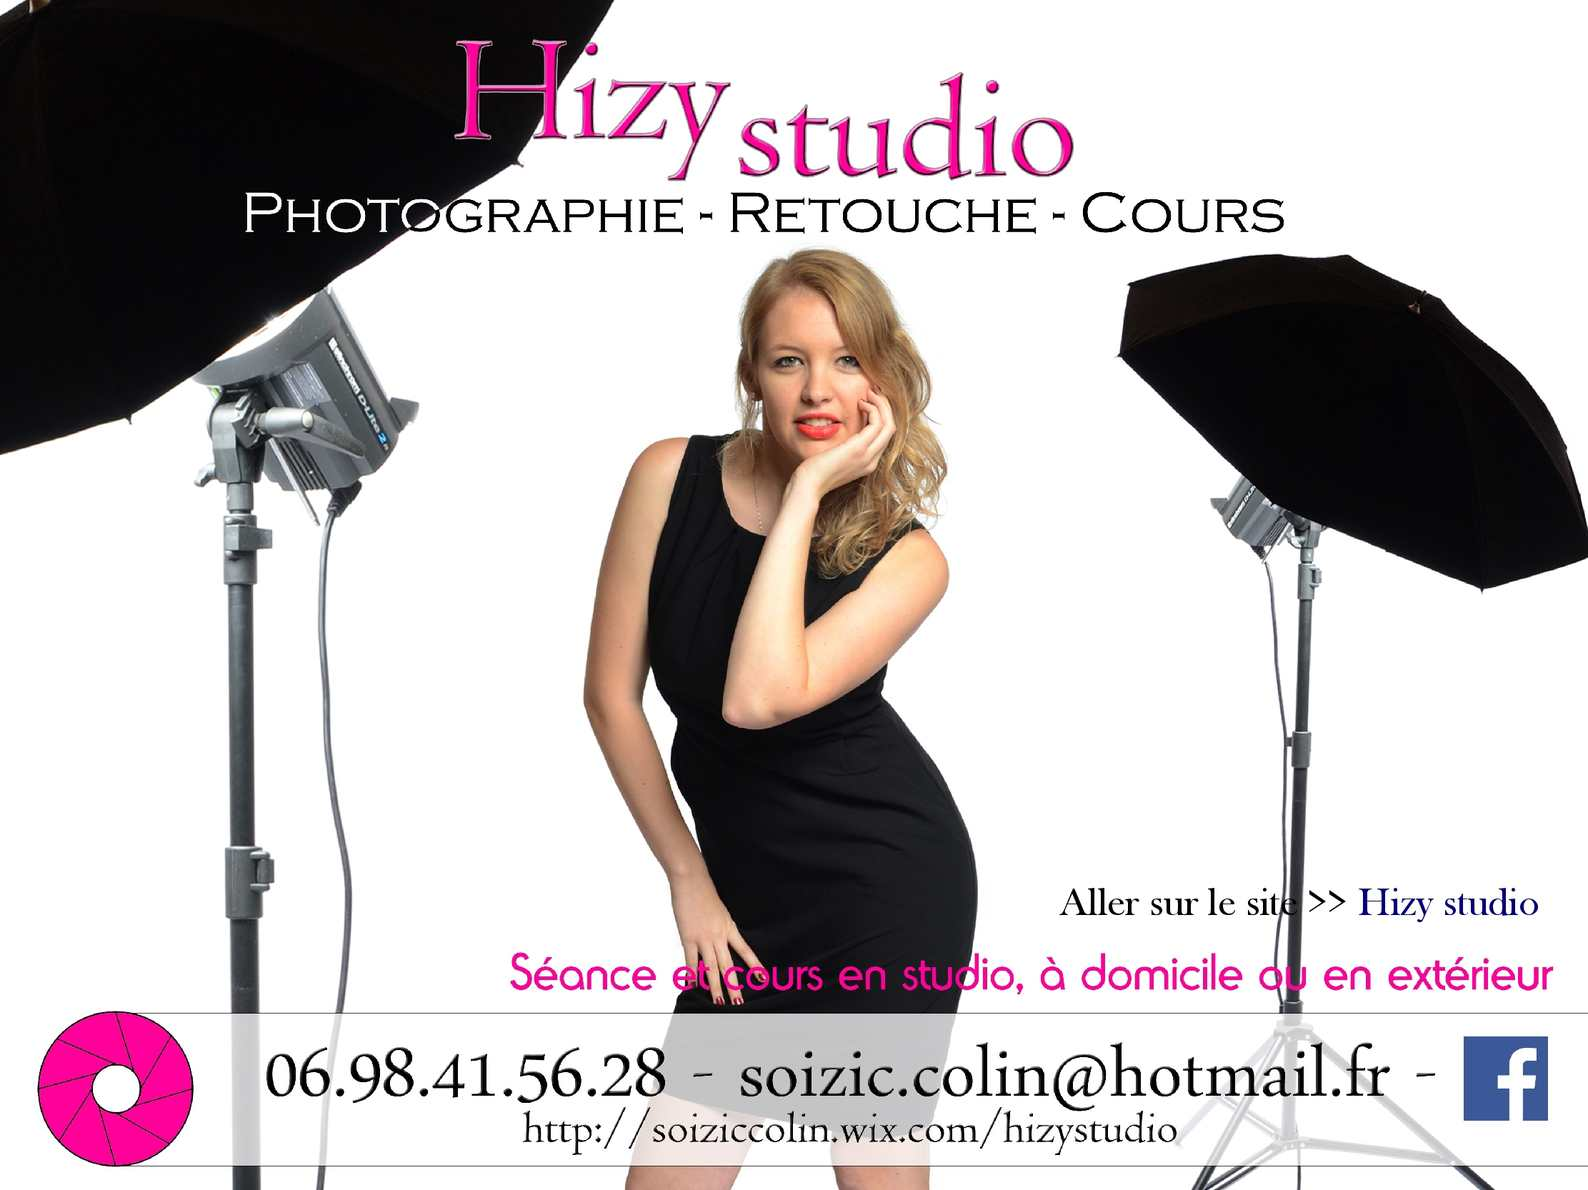 calam o mon photographe en haute normandie evreux 27 louviers rouen 76 avec hizy studio. Black Bedroom Furniture Sets. Home Design Ideas